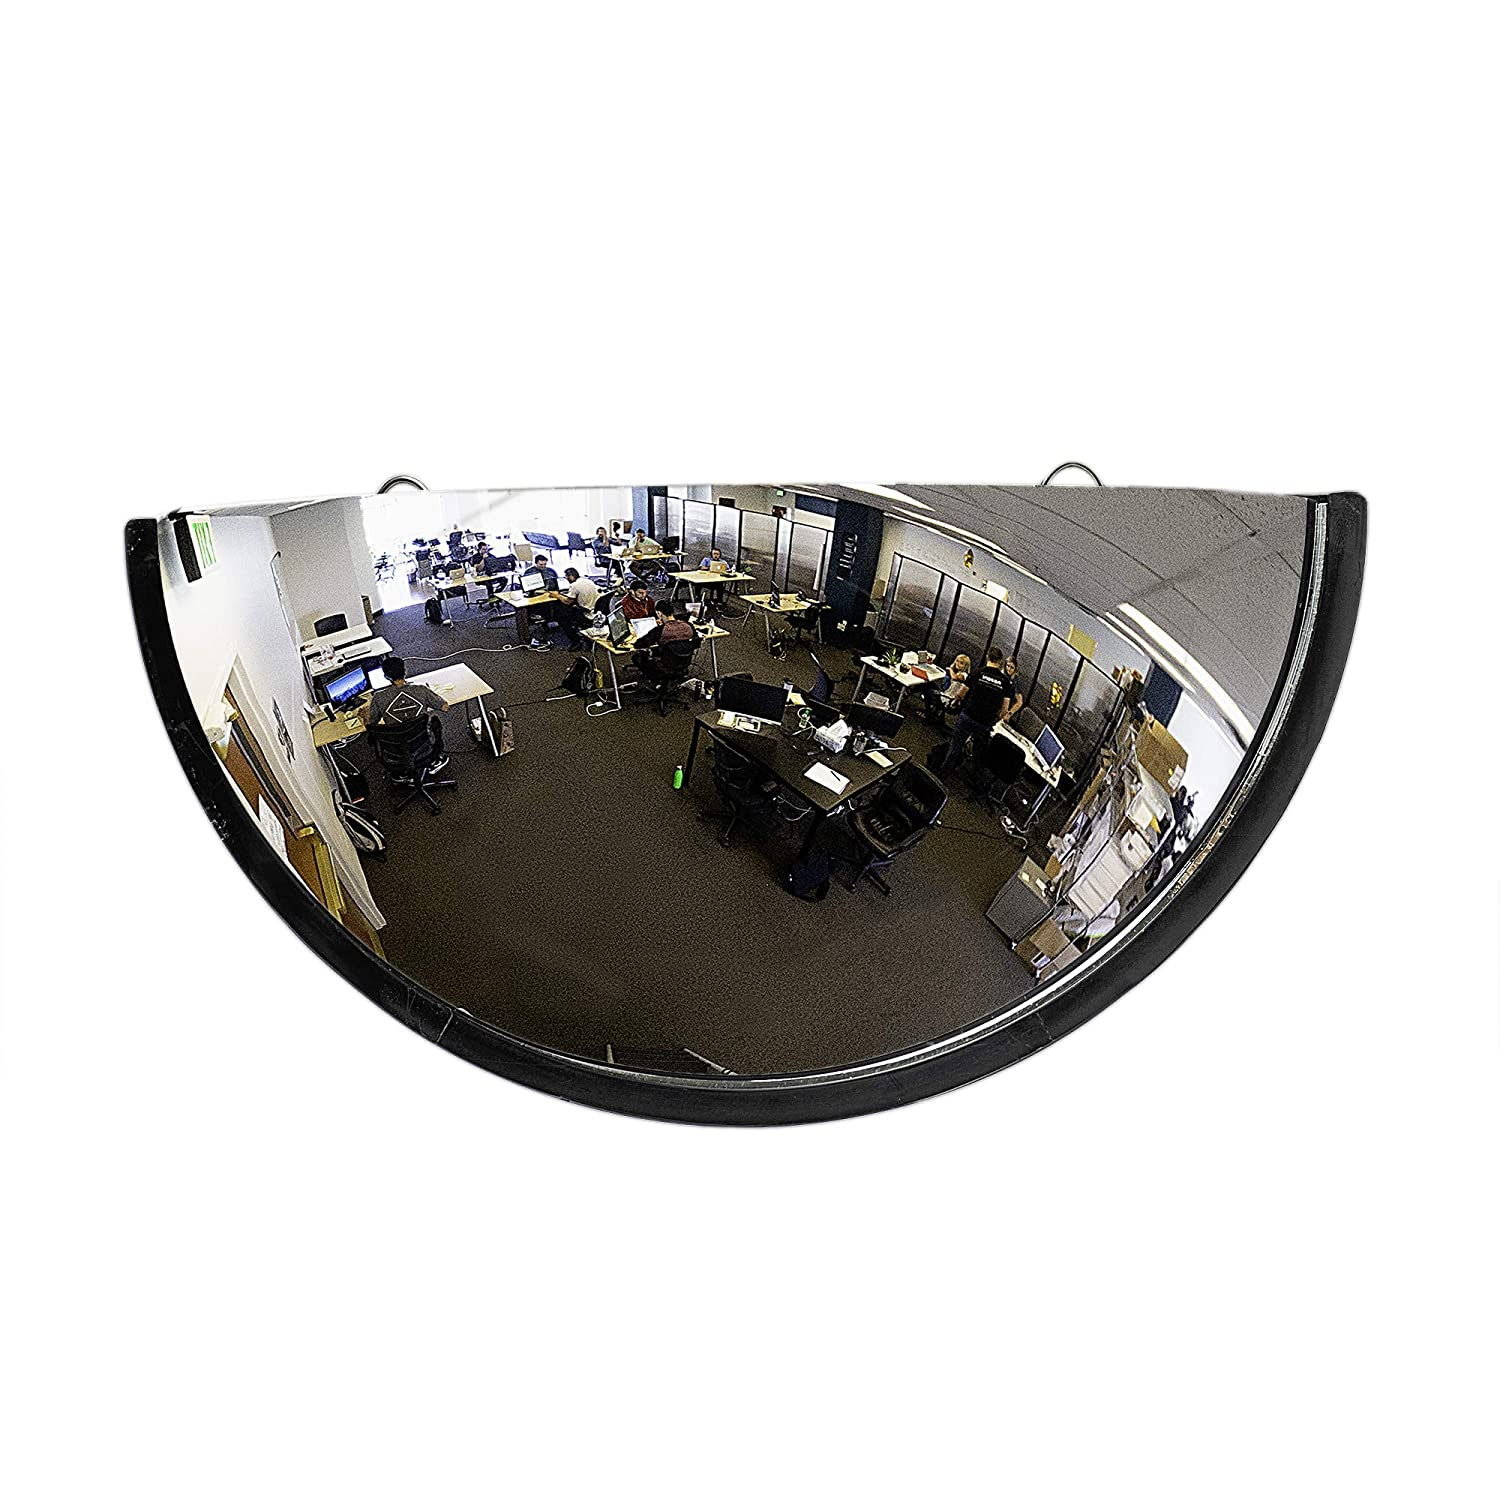 """26 Vision Metalizers DPB2600 26/"""" Acrylic Bubble Dome Mirror Round Indoor Security Mirror for Driveway Safety Spots Outdoor Warehouse Side View Circular Wall Mirror"""